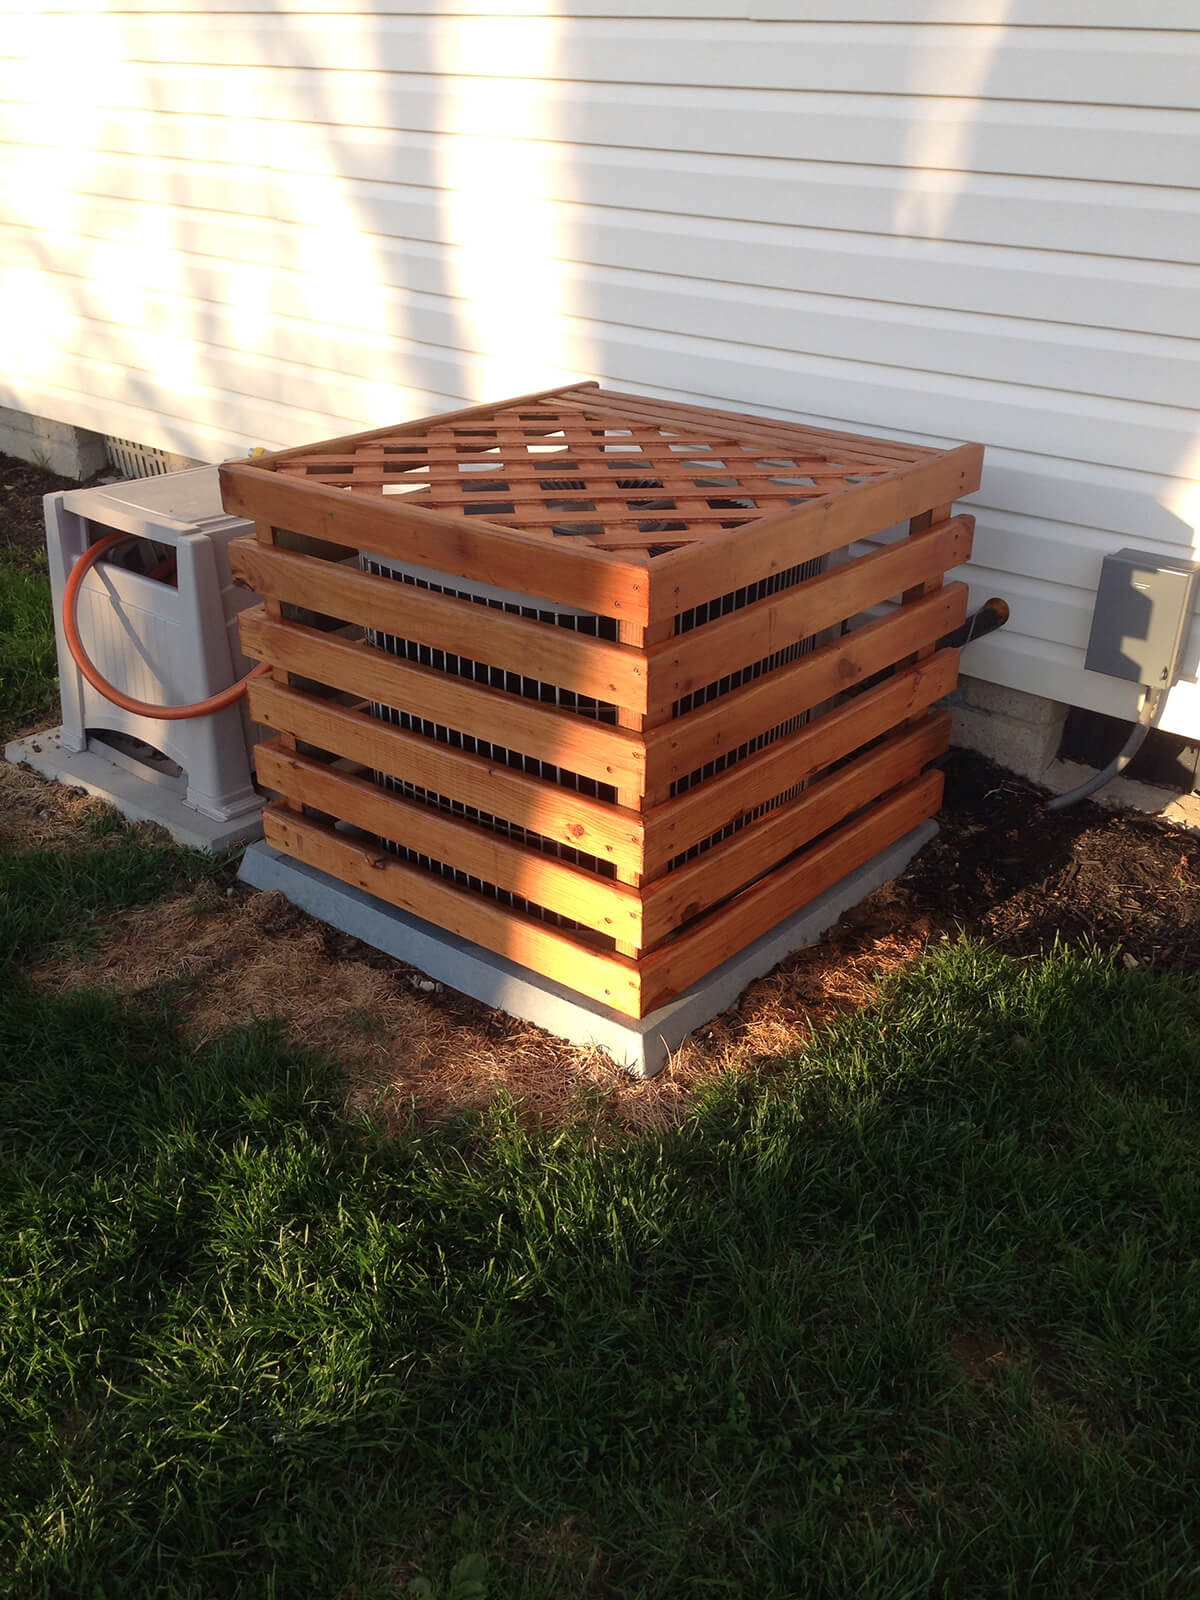 A Trellis Top Adds Further Disguise